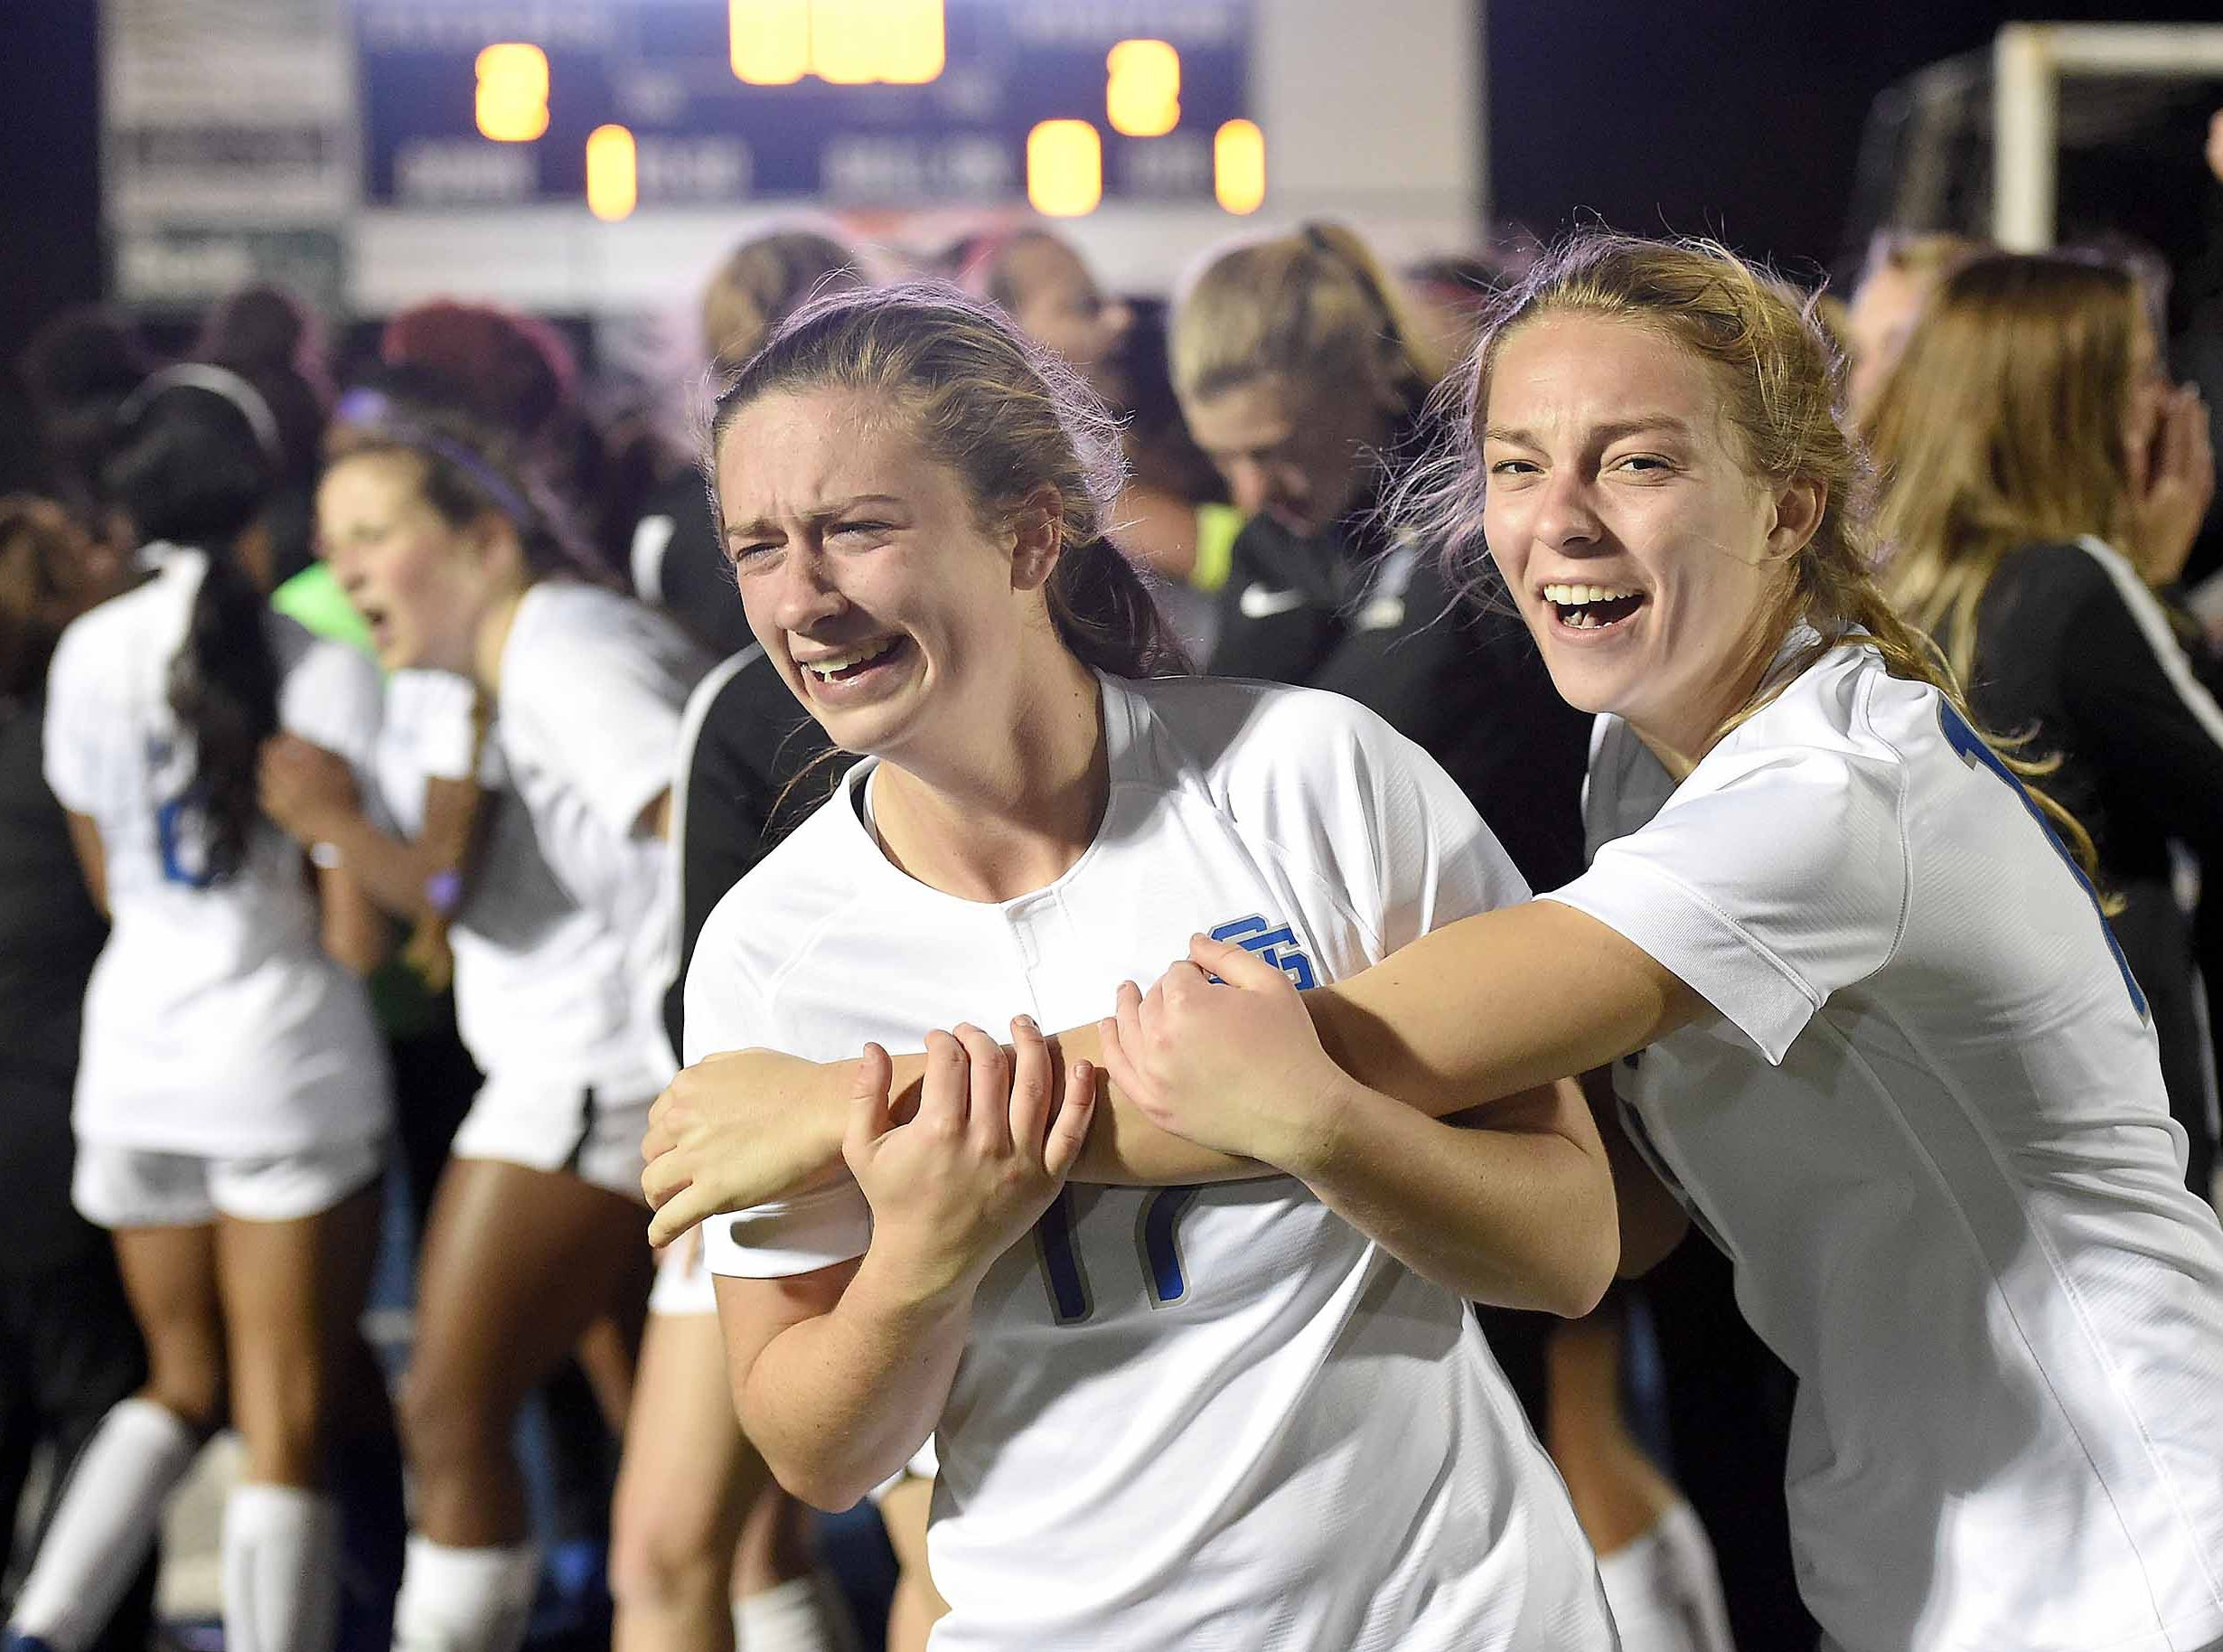 The Ocean Springs Lady Greyhounds celebrate after beating Madison Central 1-0 on penalty kicks after overtime periods in the Class 6A championship in the MHSAA BlueCross Blue Shield of Mississippi Soccer Classic on Saturday, February 9, 2019, at Ridgeland High School in Ridgeland, Miss.